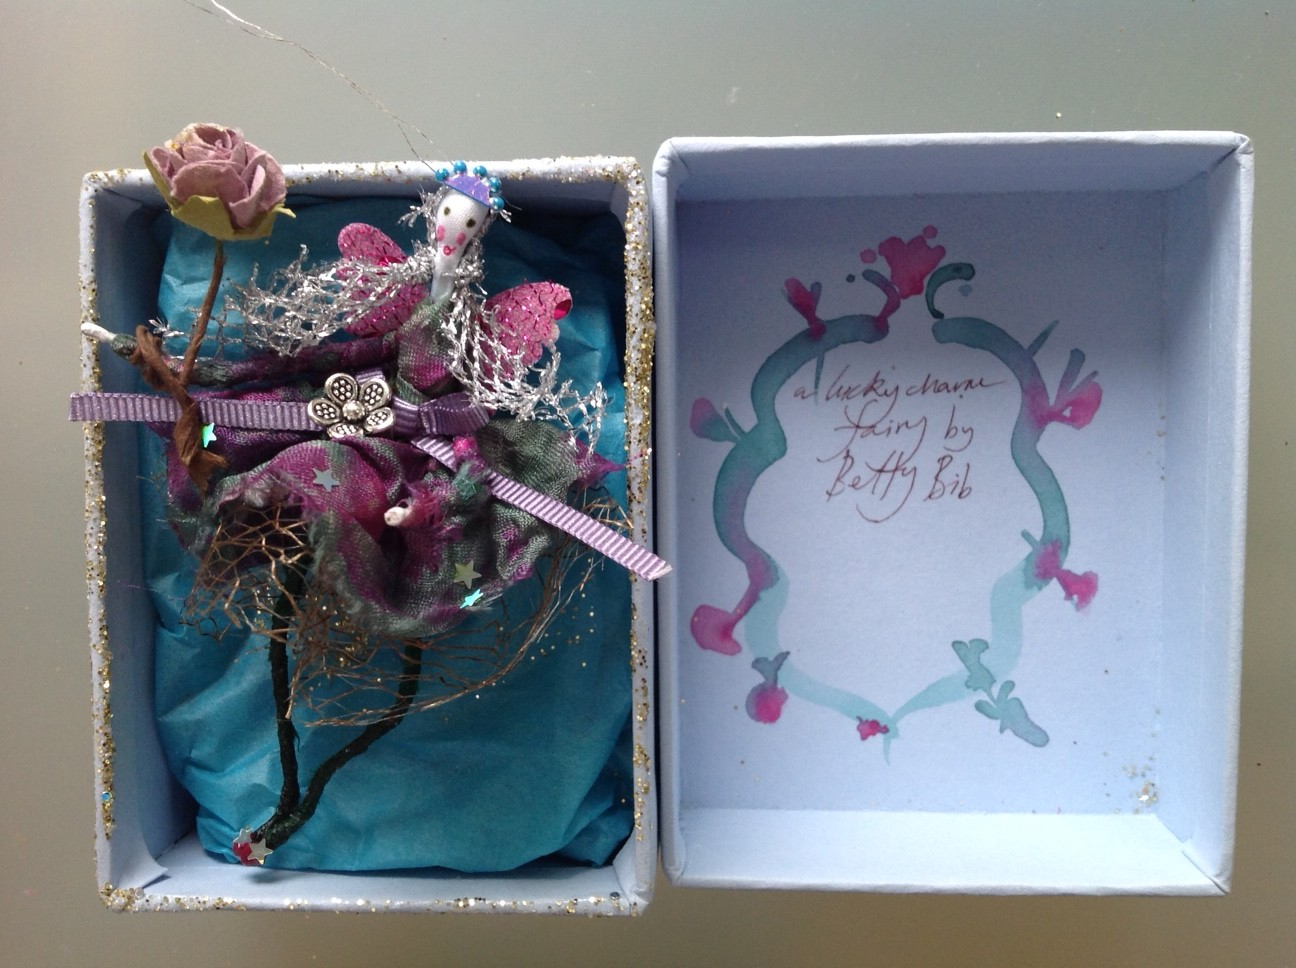 A LUCKY CHARM FAIRY  A 9cm fairy in a box with a flower charm at her waist. She is holding a paper rose wand. £20 plus £3.50 p&p